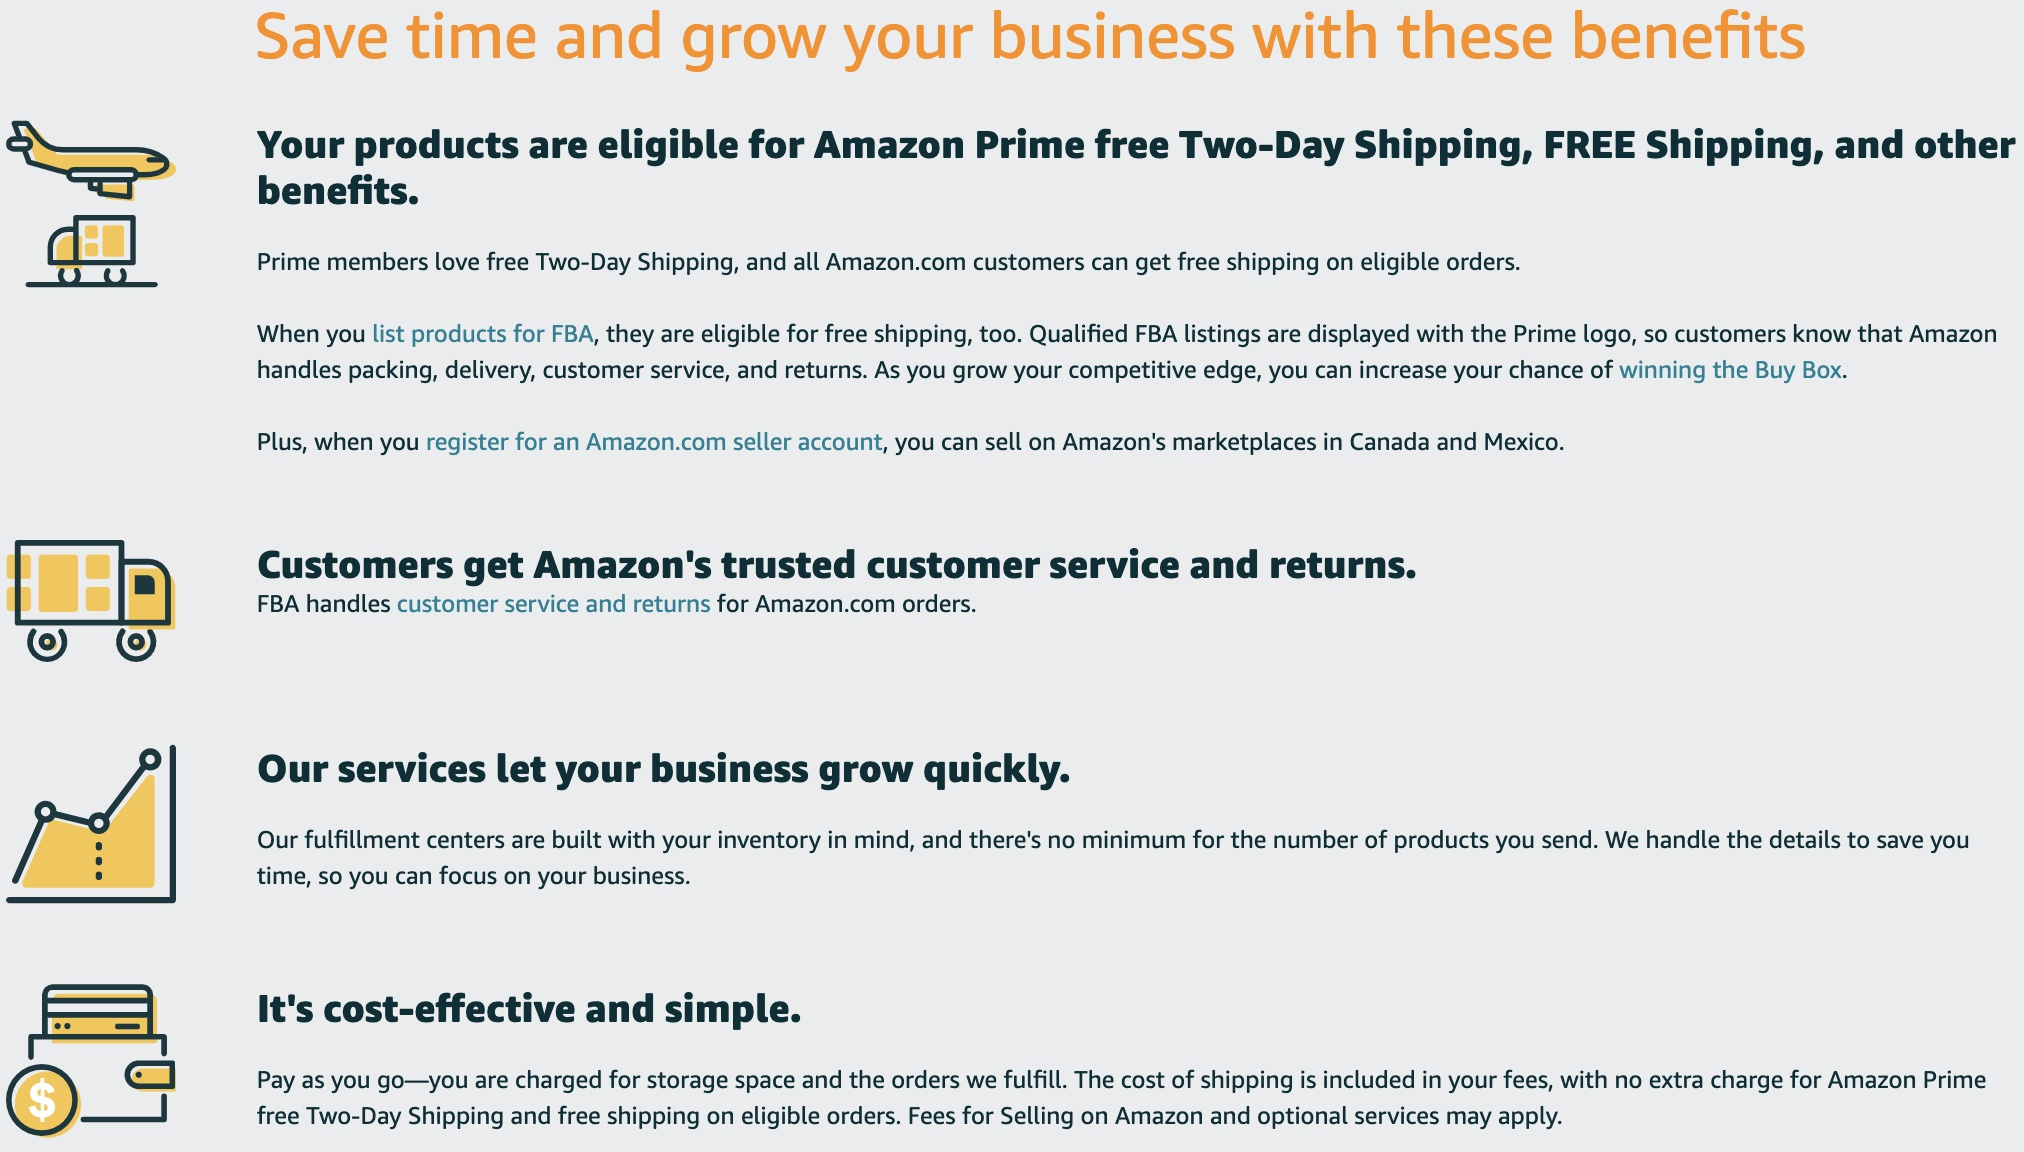 Amazon FBA benefits